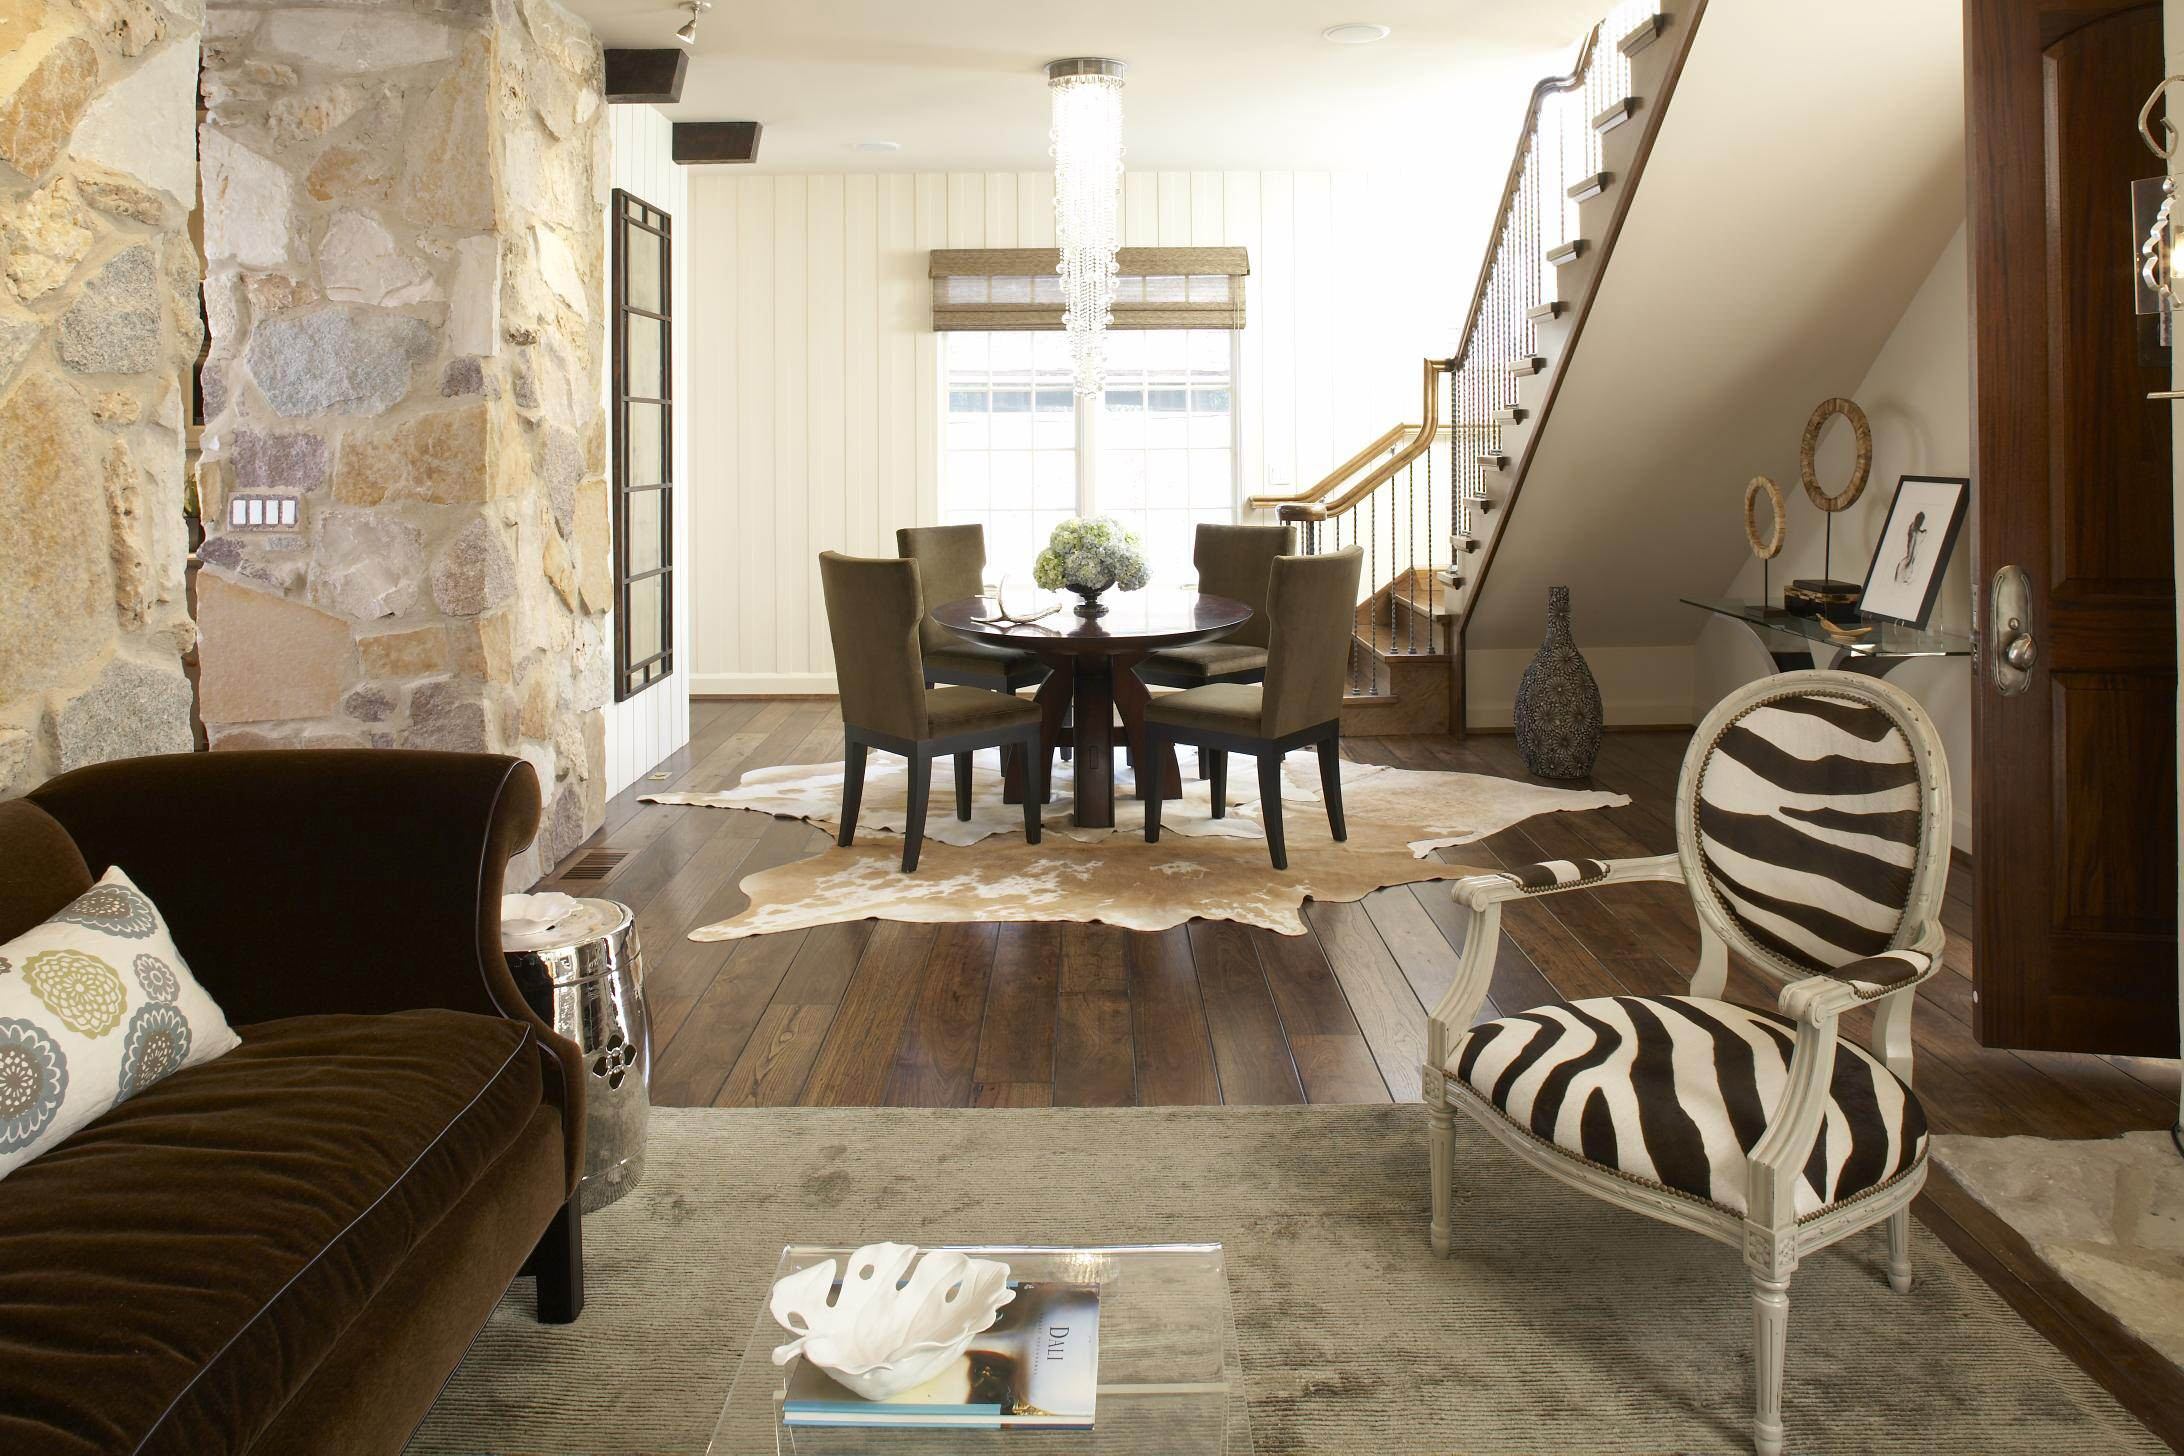 Traditional Family Room Designs With Stone Wall And Plank Wood Flooring Plus Cow Hide Rug For Area Dining With Glass Round Dining Table And Upholstered Dining Chairs Also Zebra Print